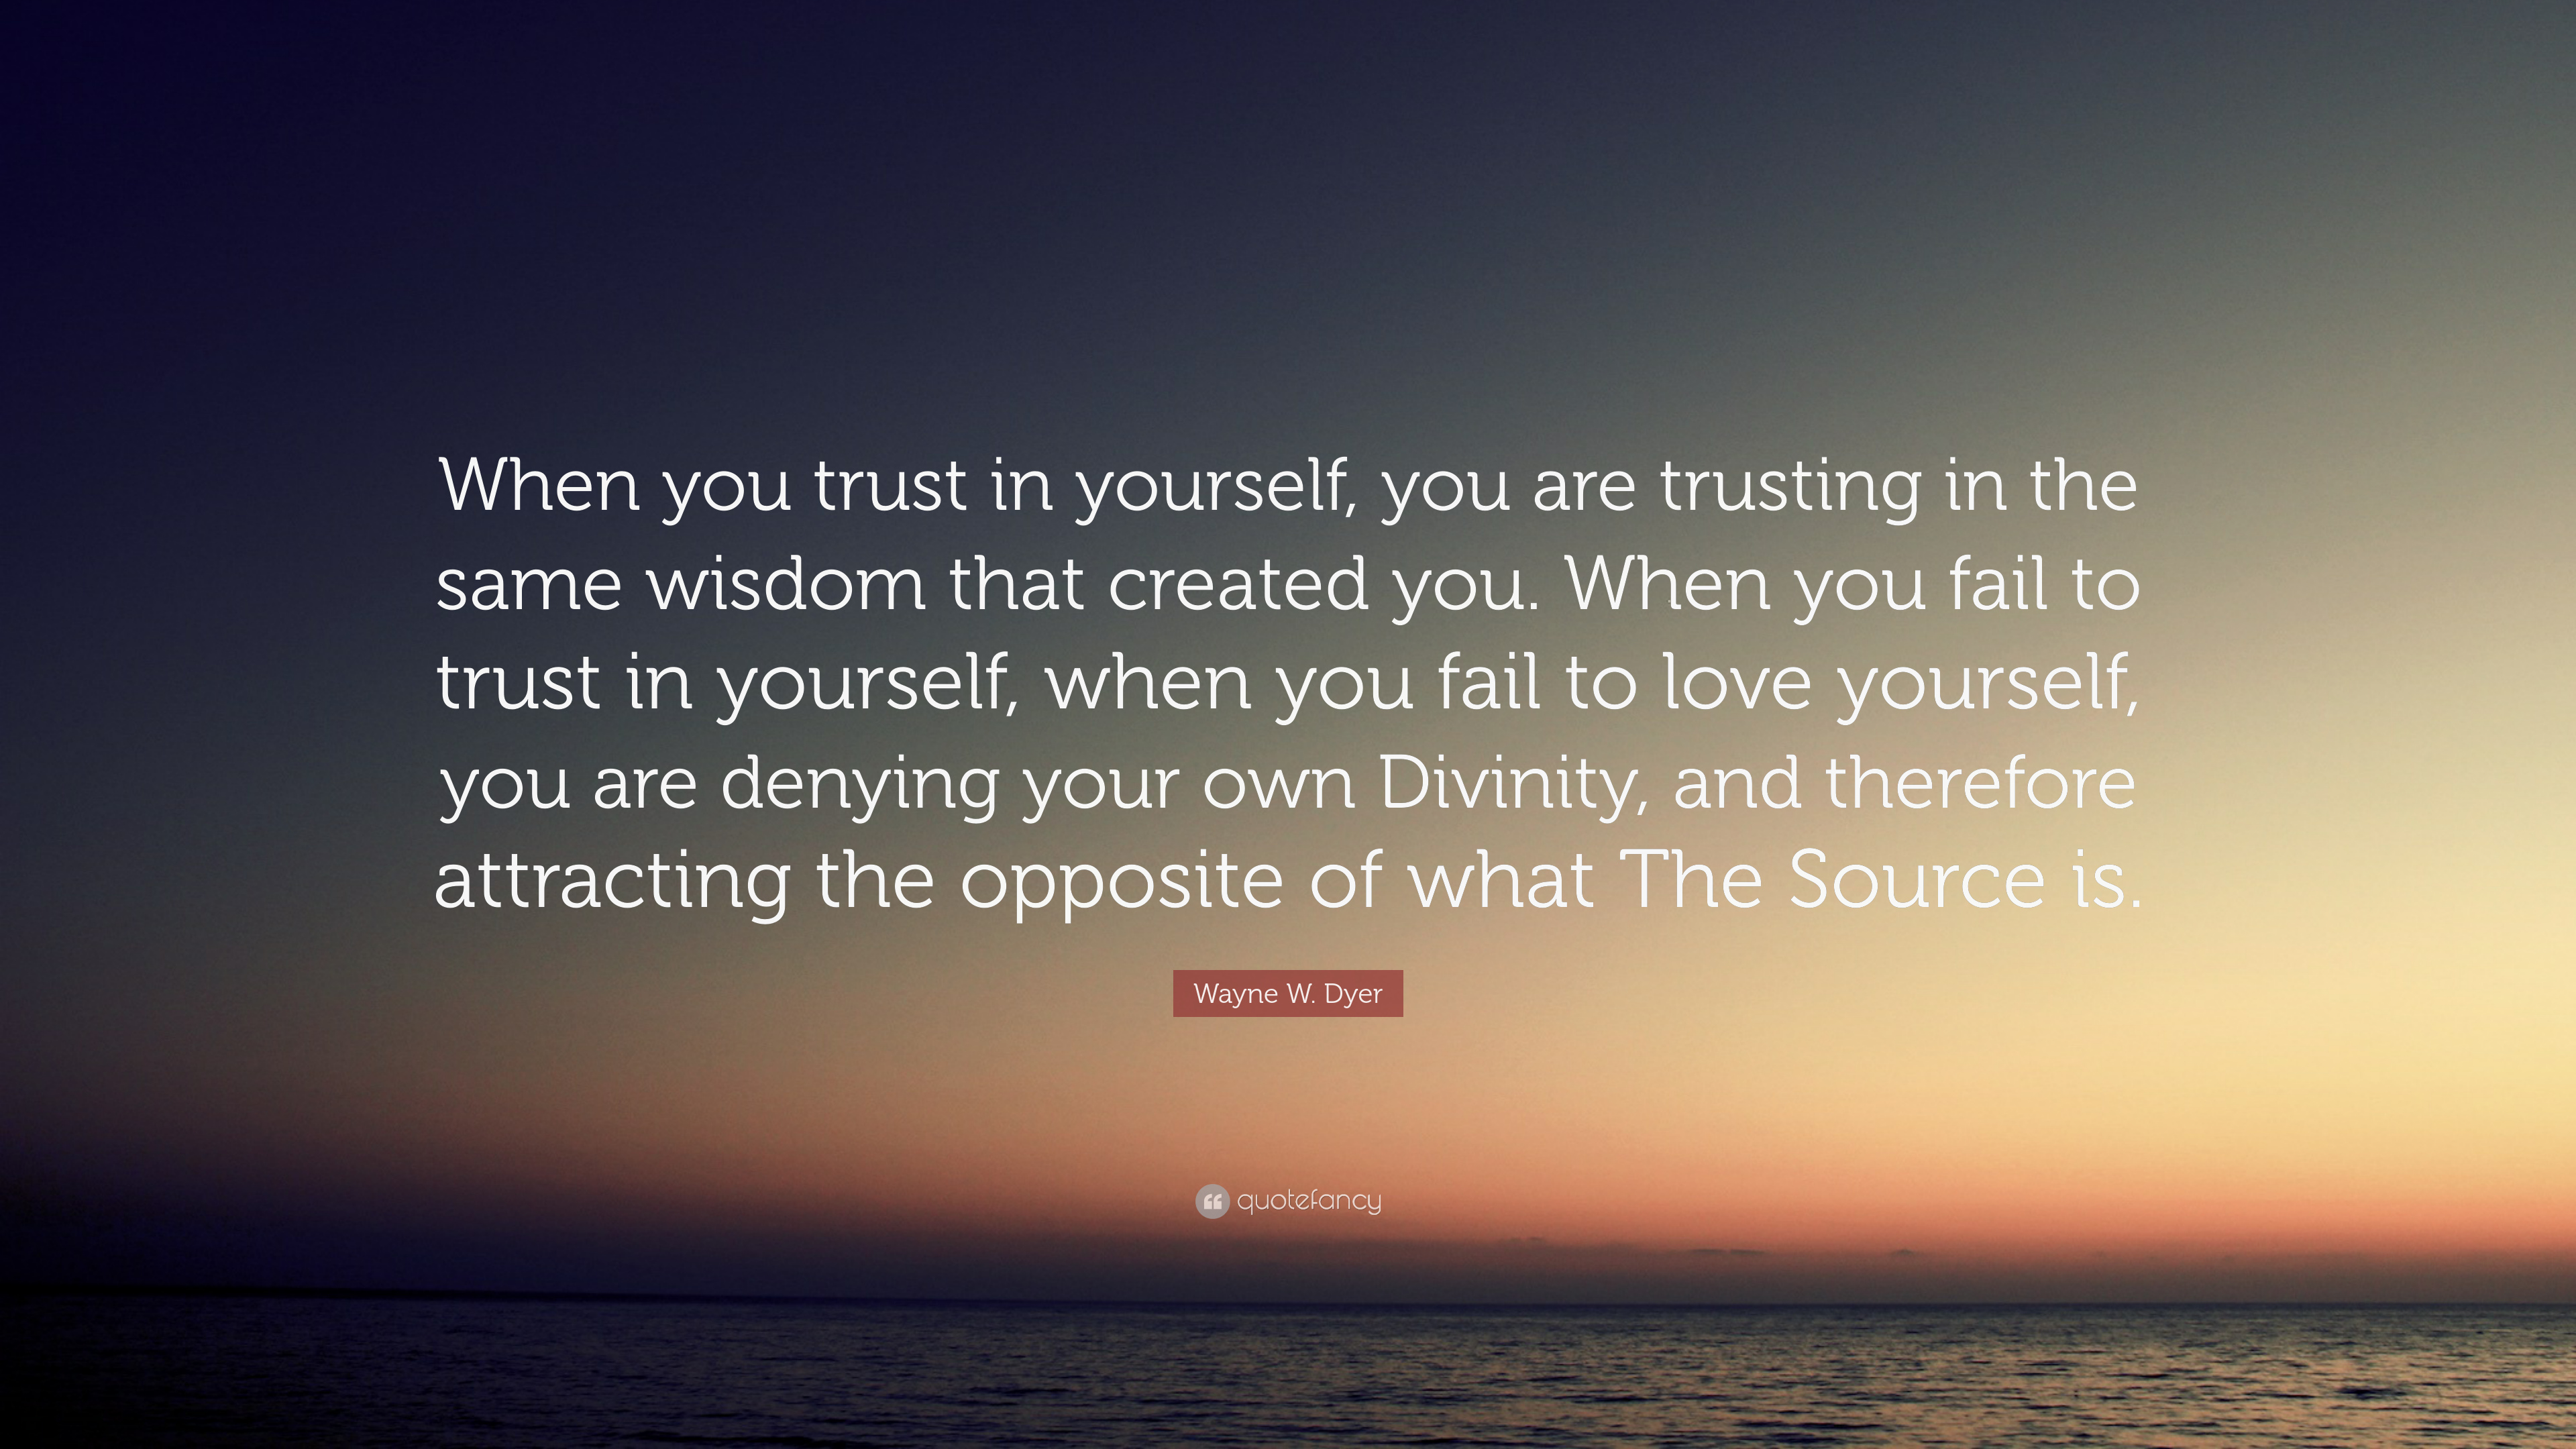 Wayne W Dyer Quote When You Trust In Yourself You Are Trusting